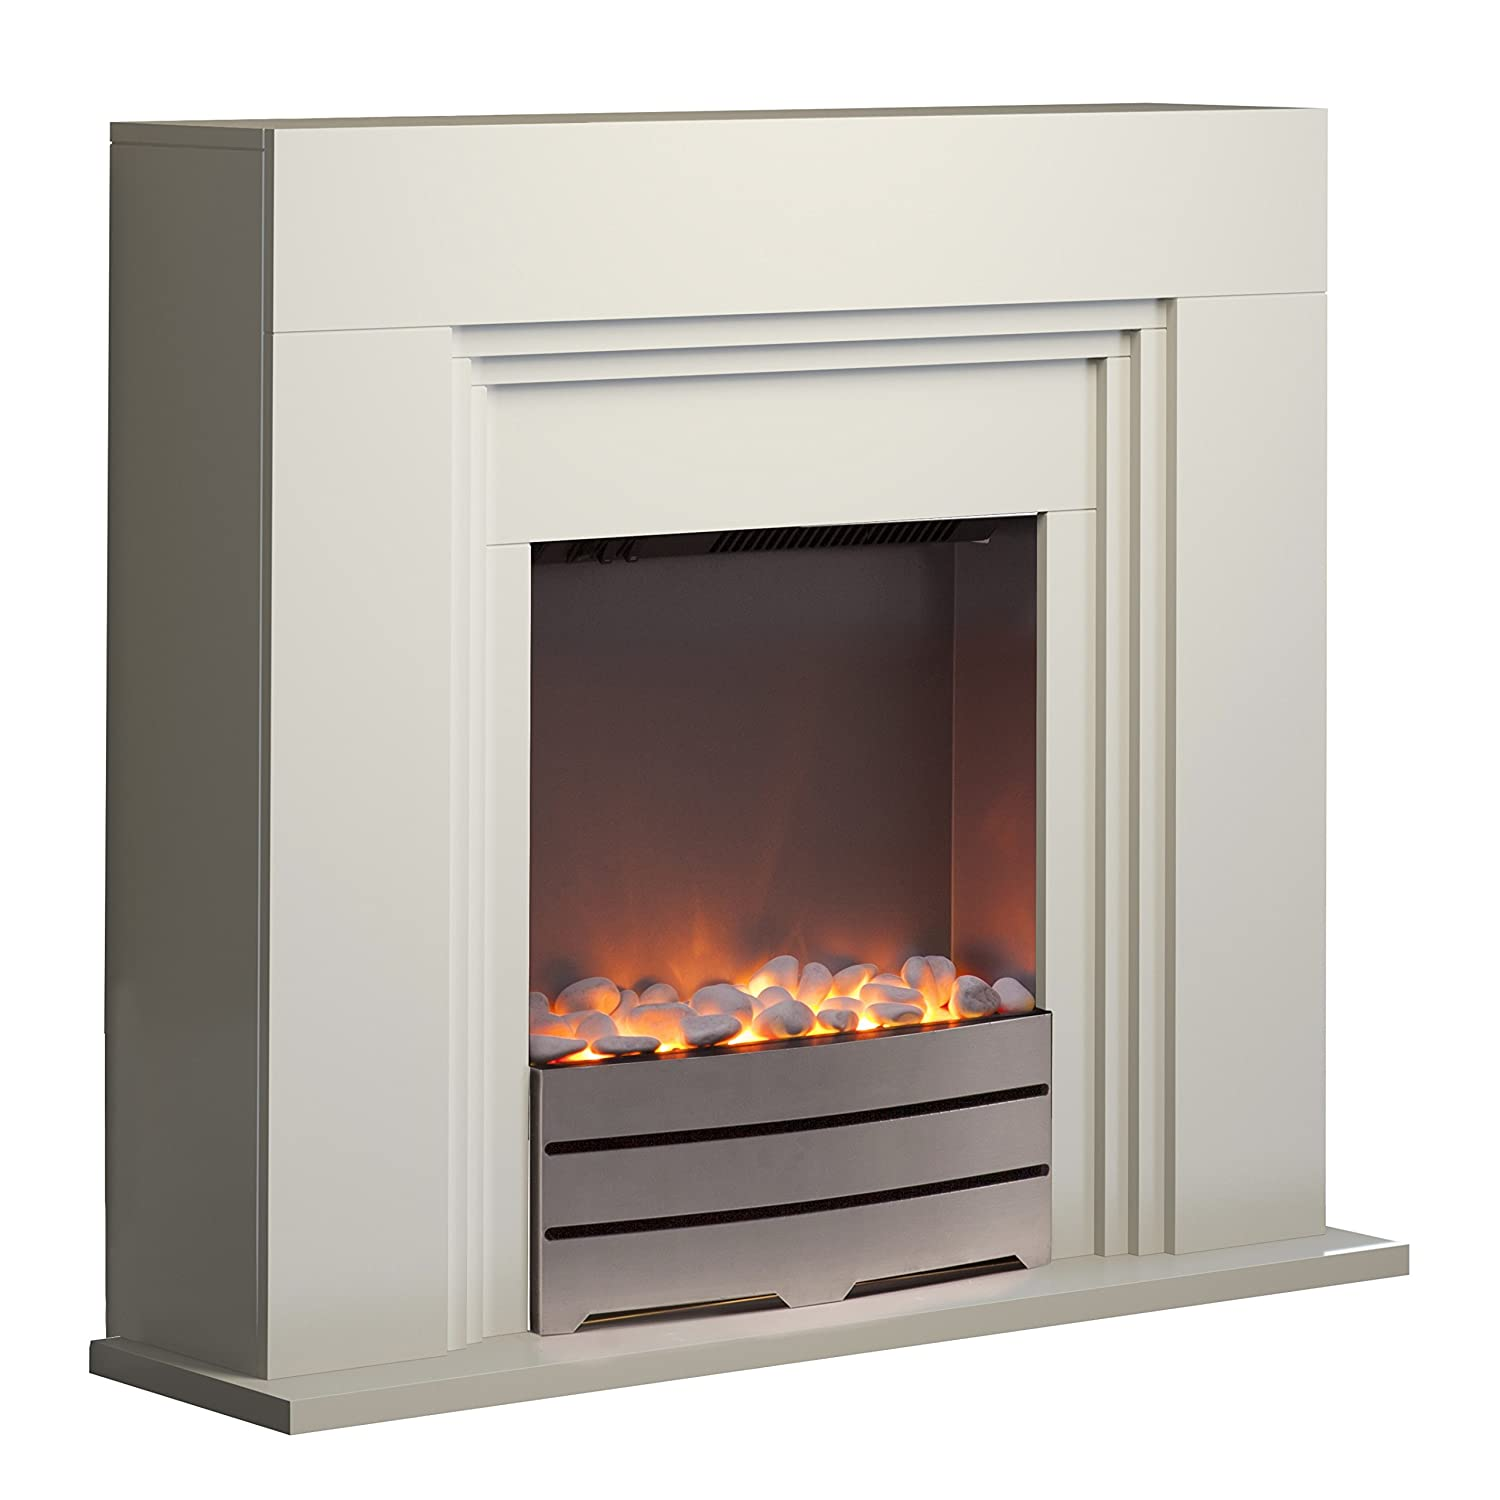 warmlite wl45023 bluetooth fireplace suite with led flame effect